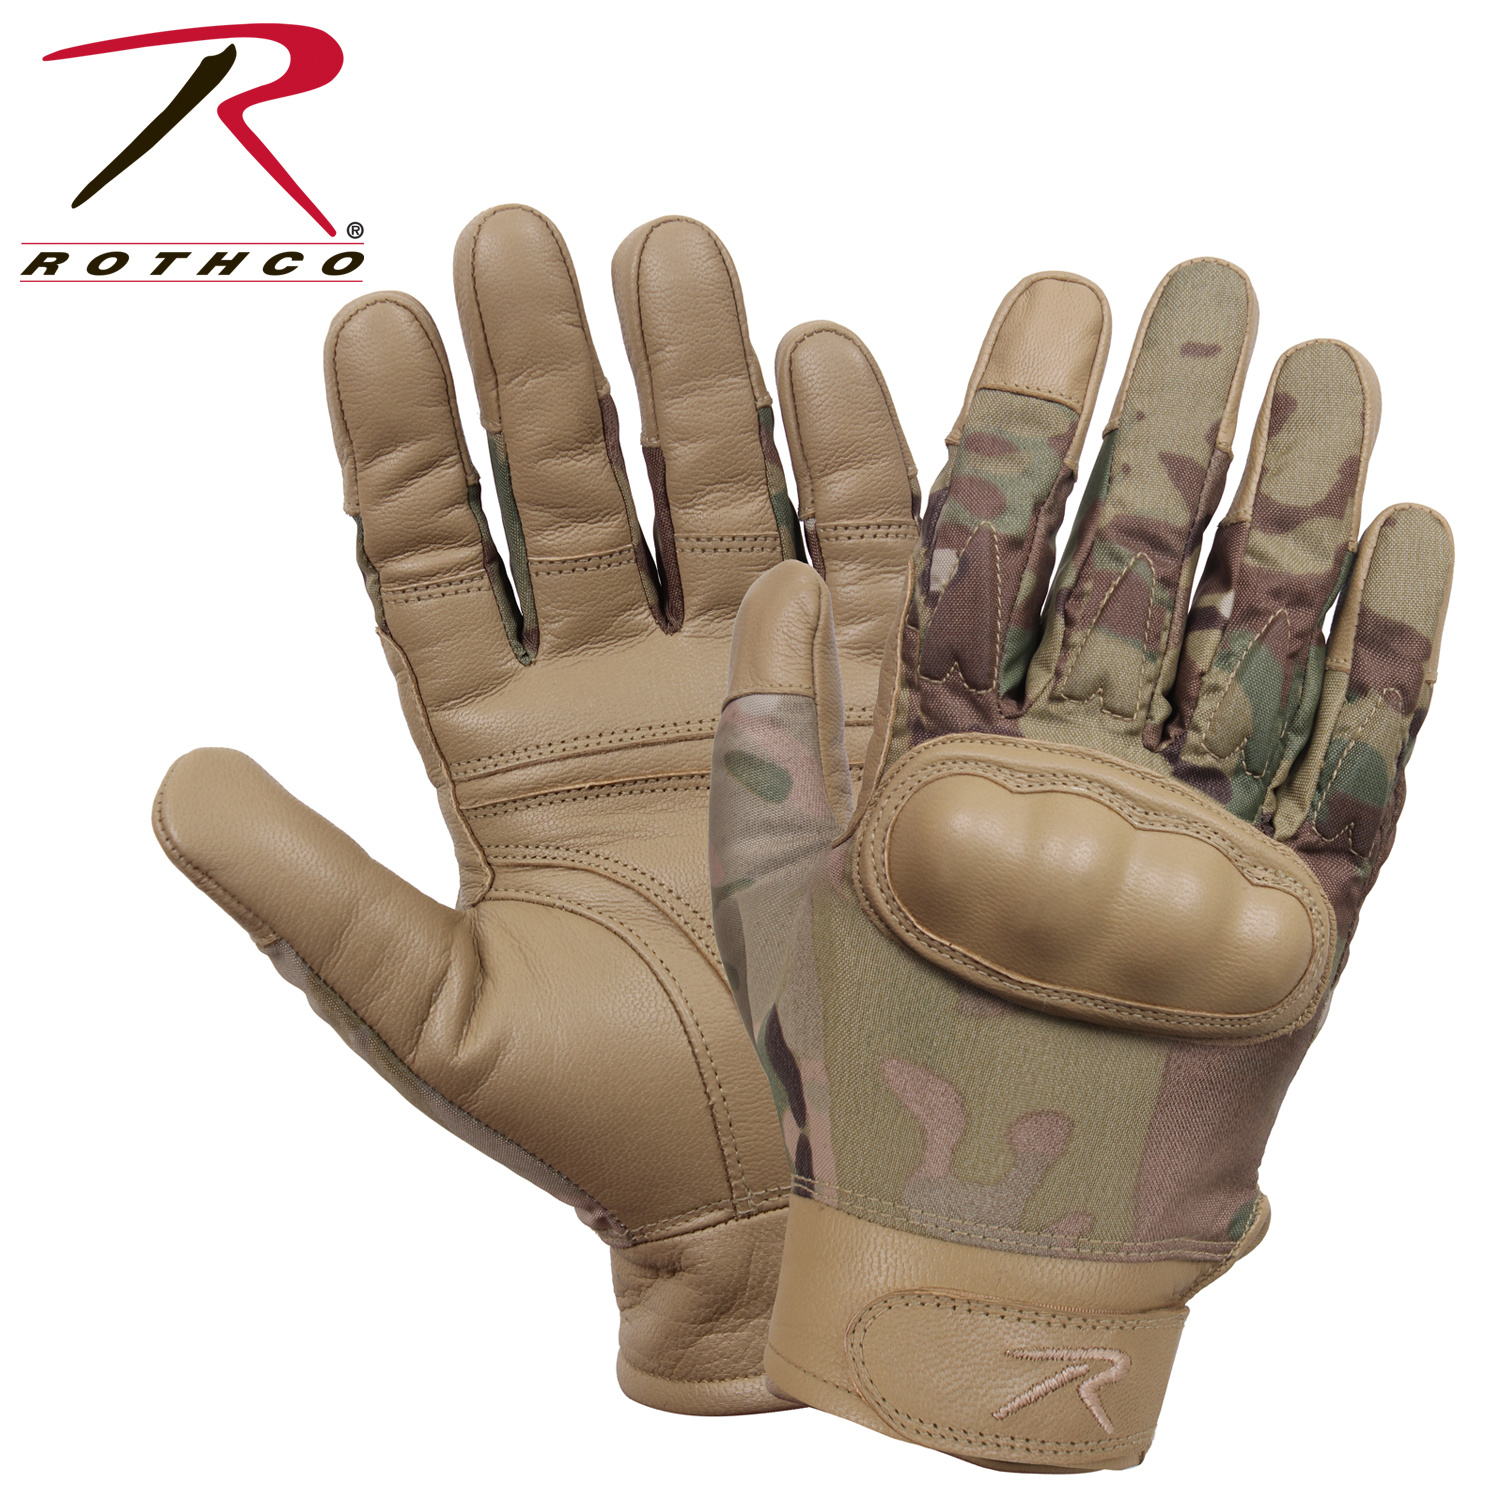 Rothco Hard Knuckle Fire Resistant Gloves